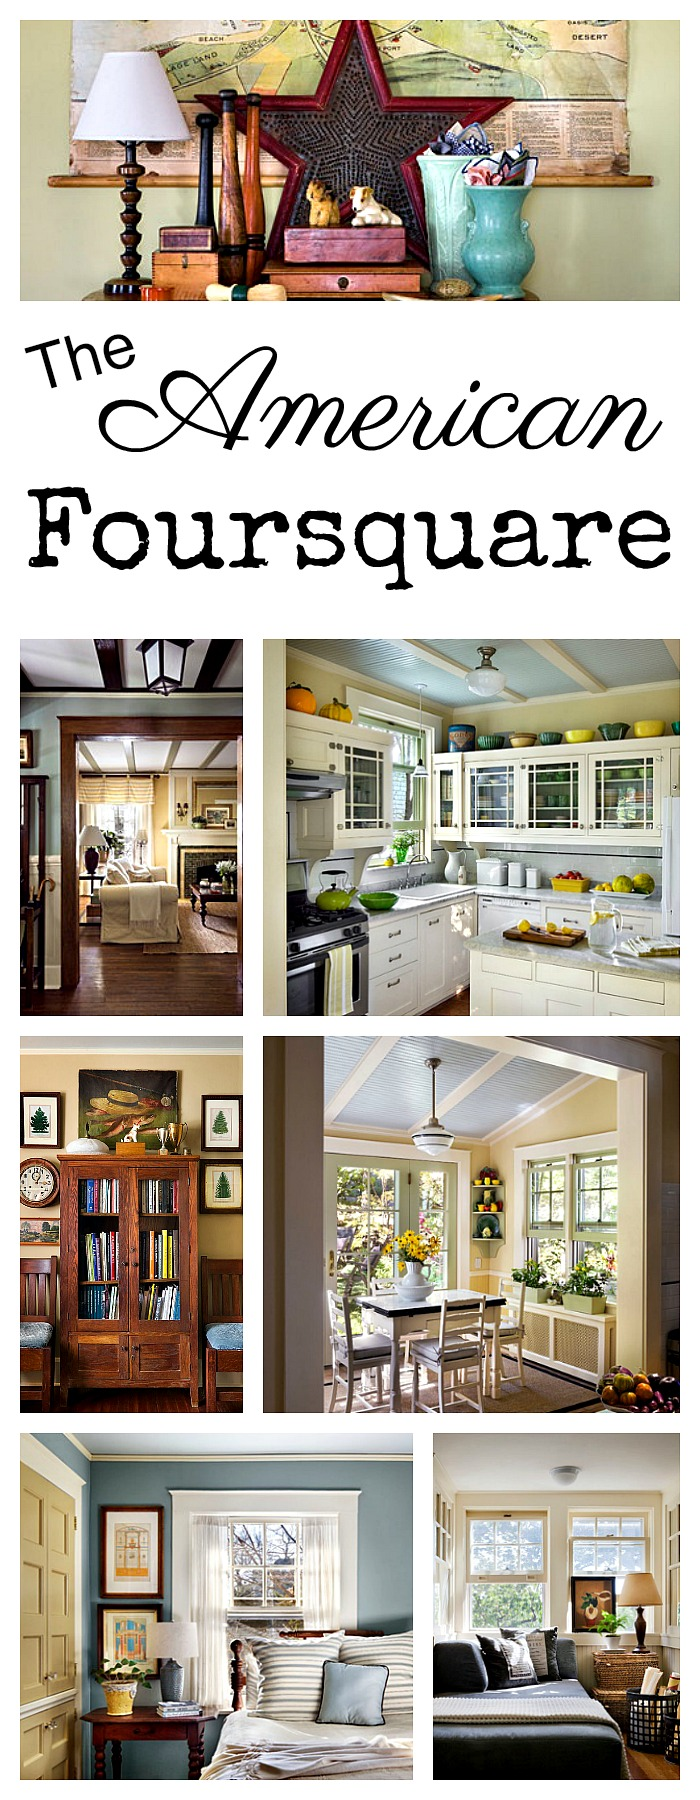 Charming home tour the american foursquare town for Classic house tour